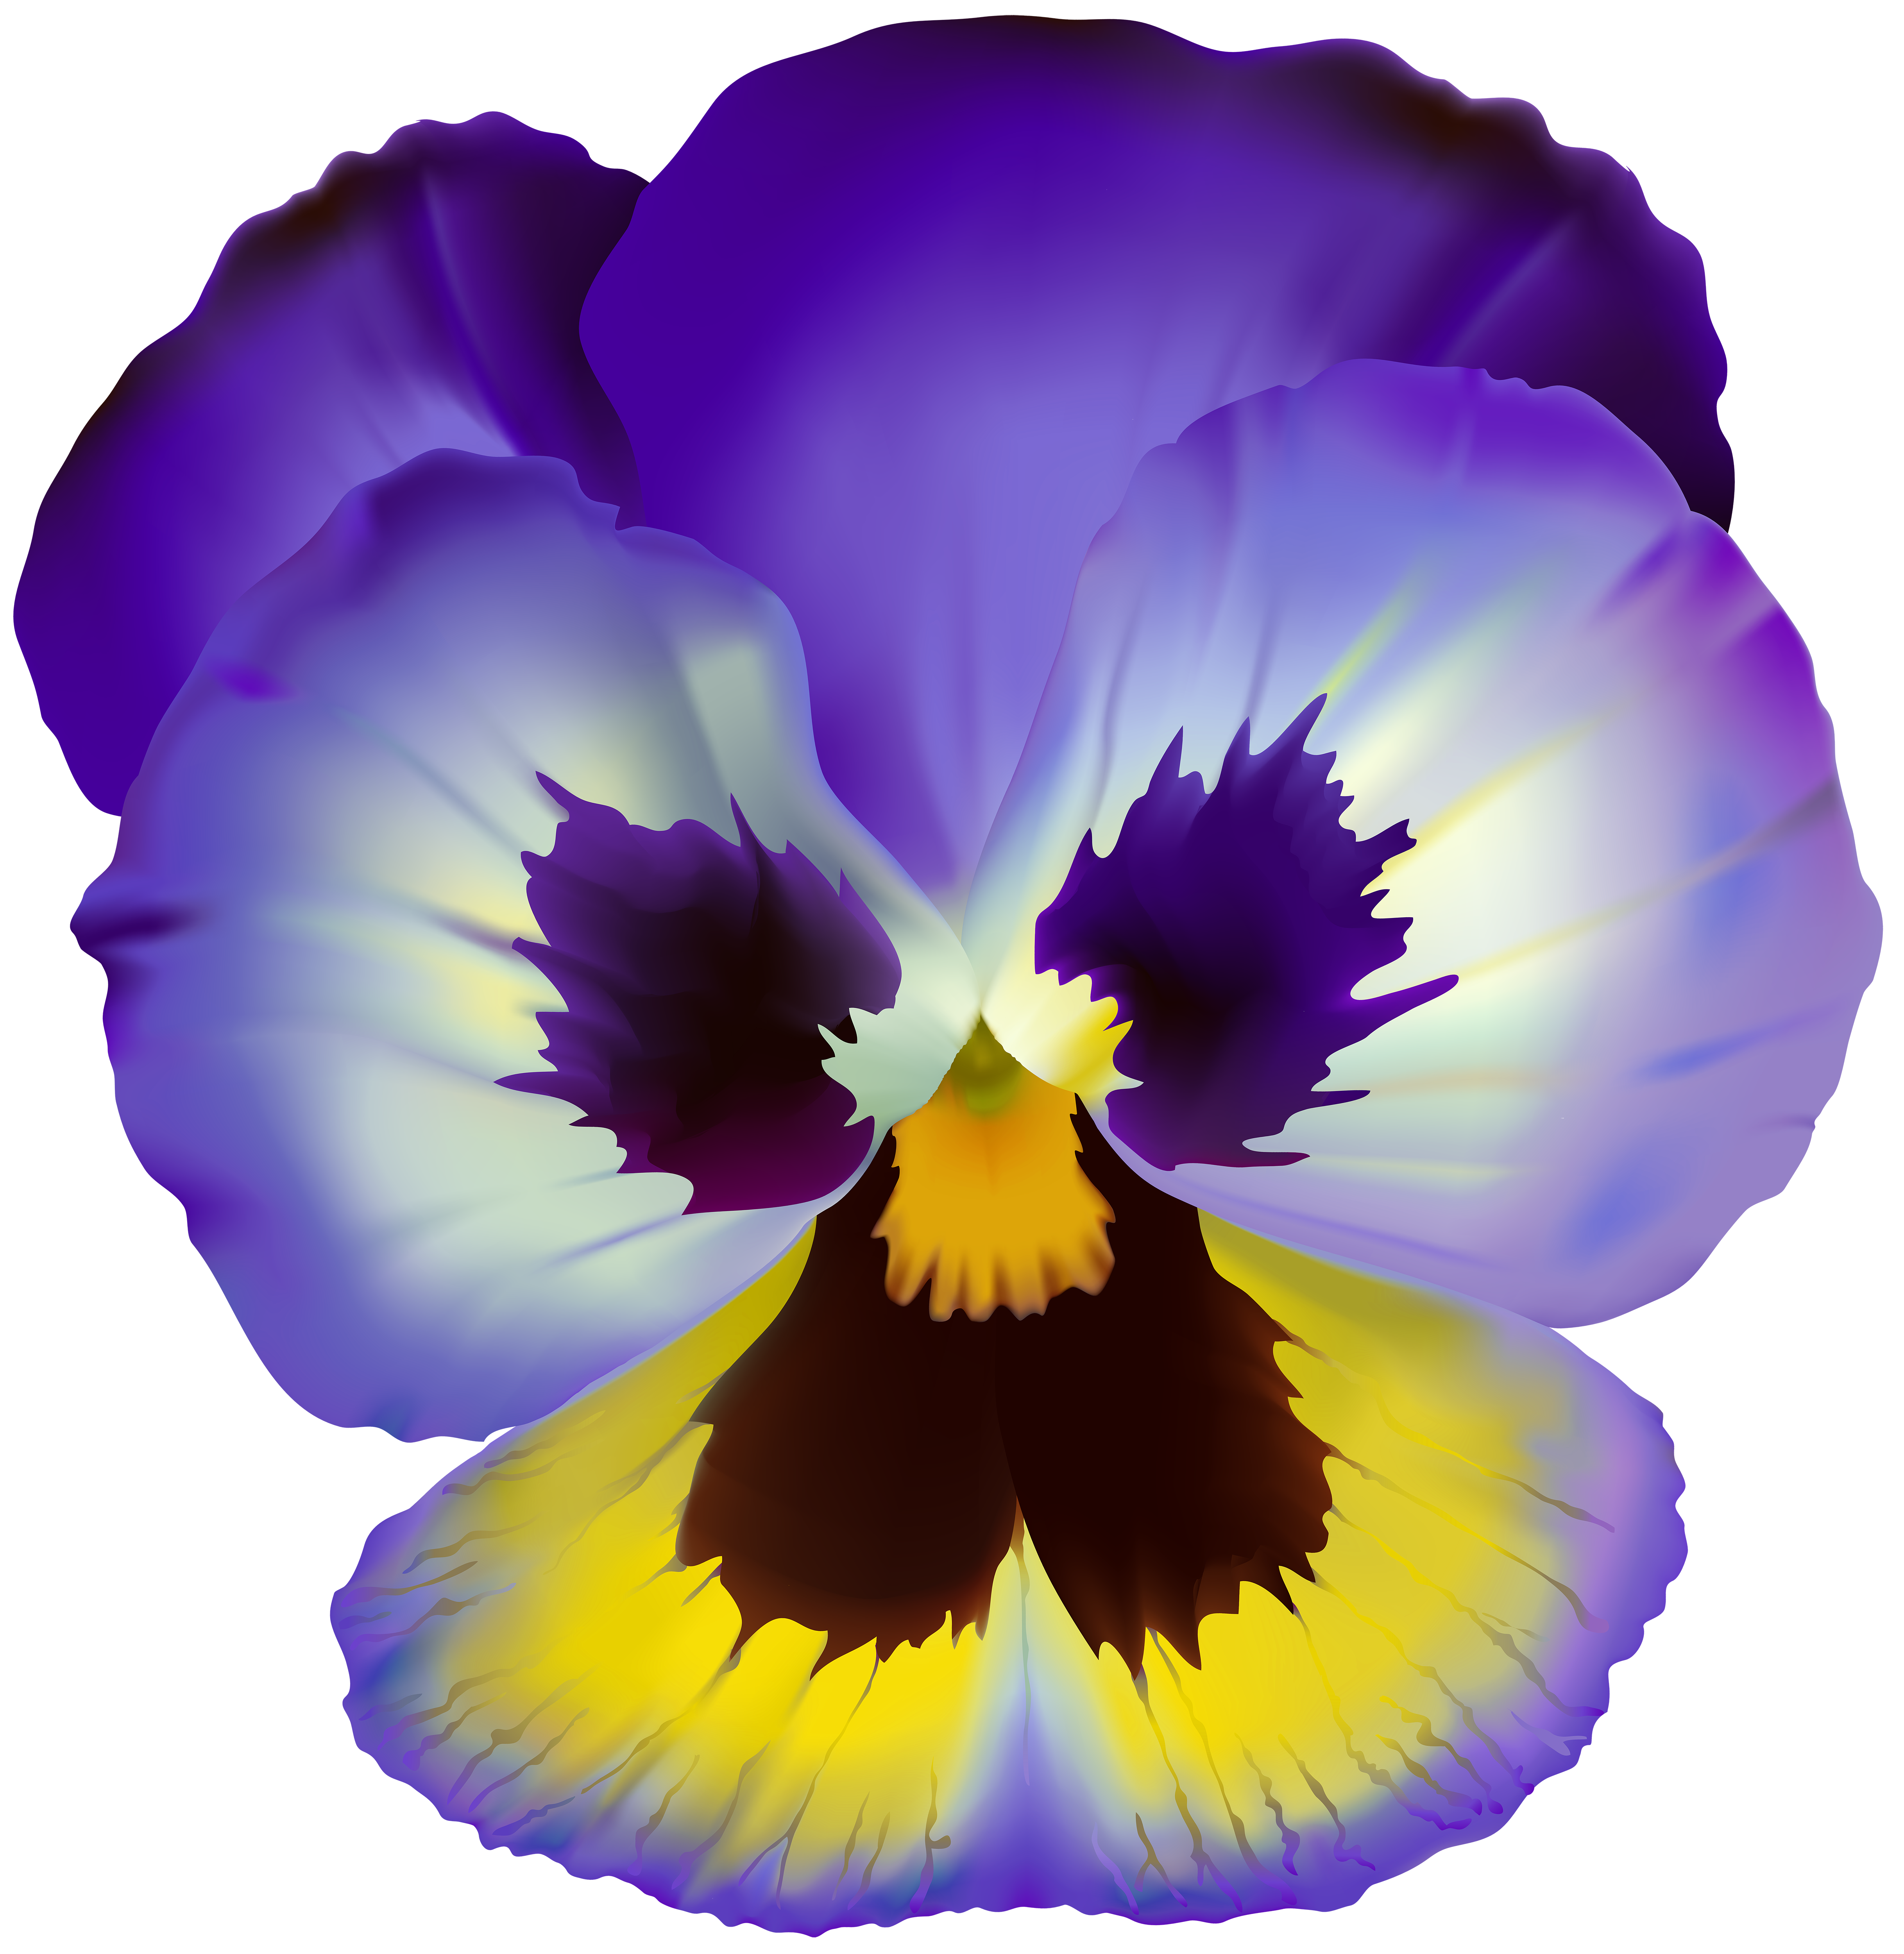 Pansy flower clipart clipart transparent library Violet Flower Transparent Clip Art | Gallery Yopriceville - High ... clipart transparent library